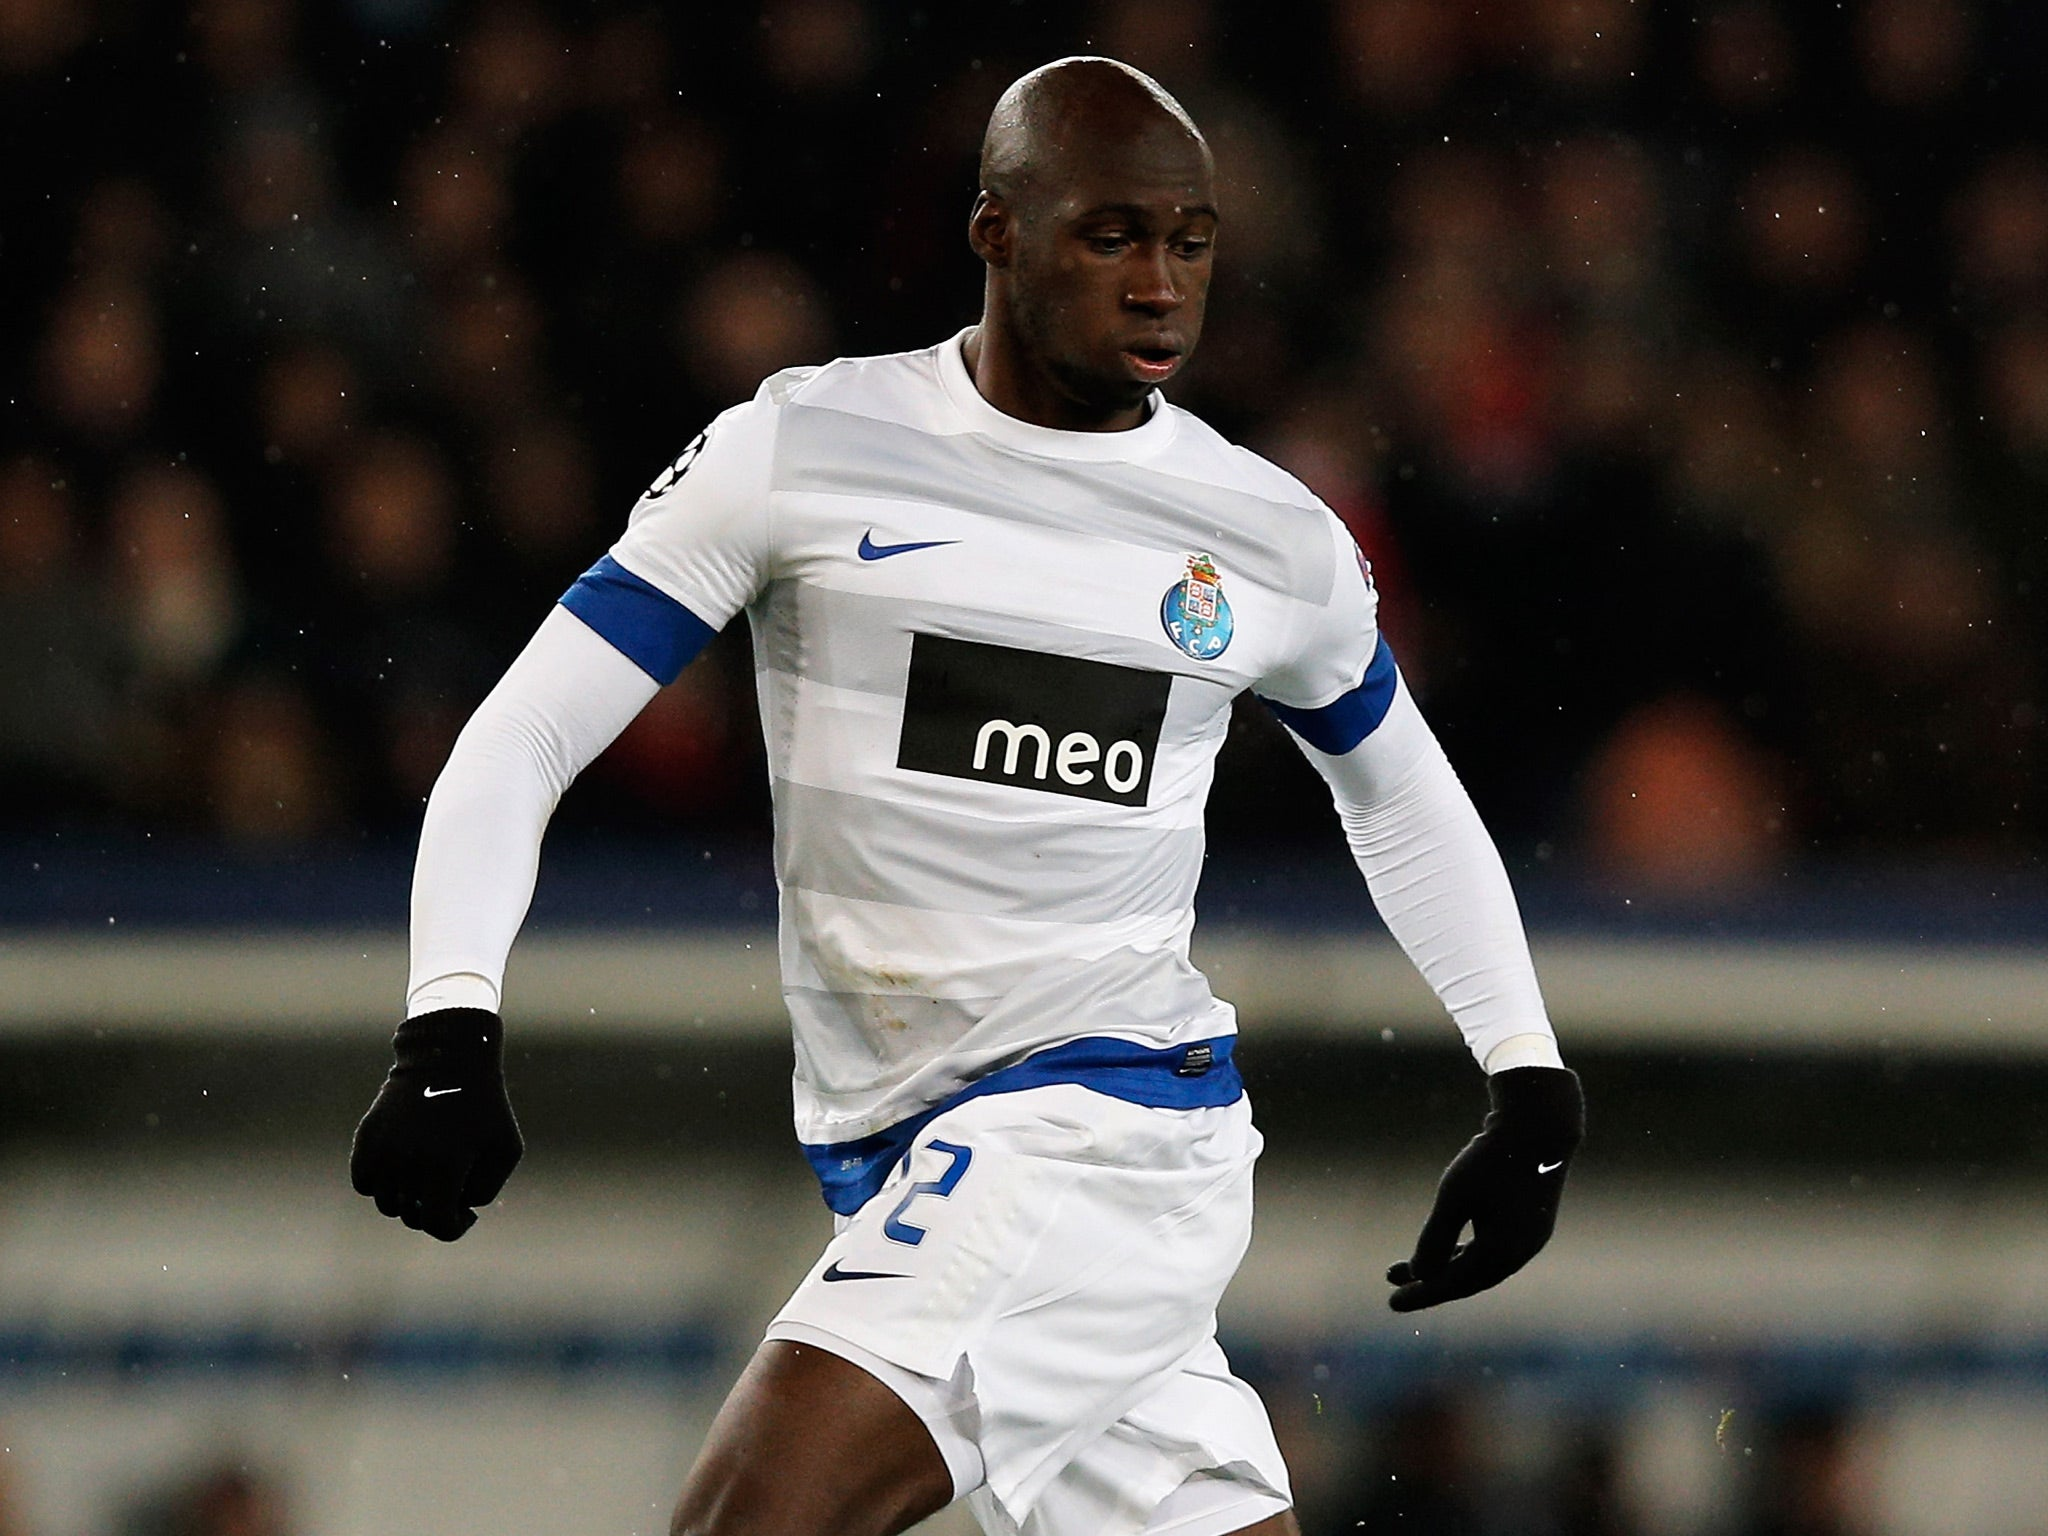 Eliaquim Mangala to Manchester City Premier League champions